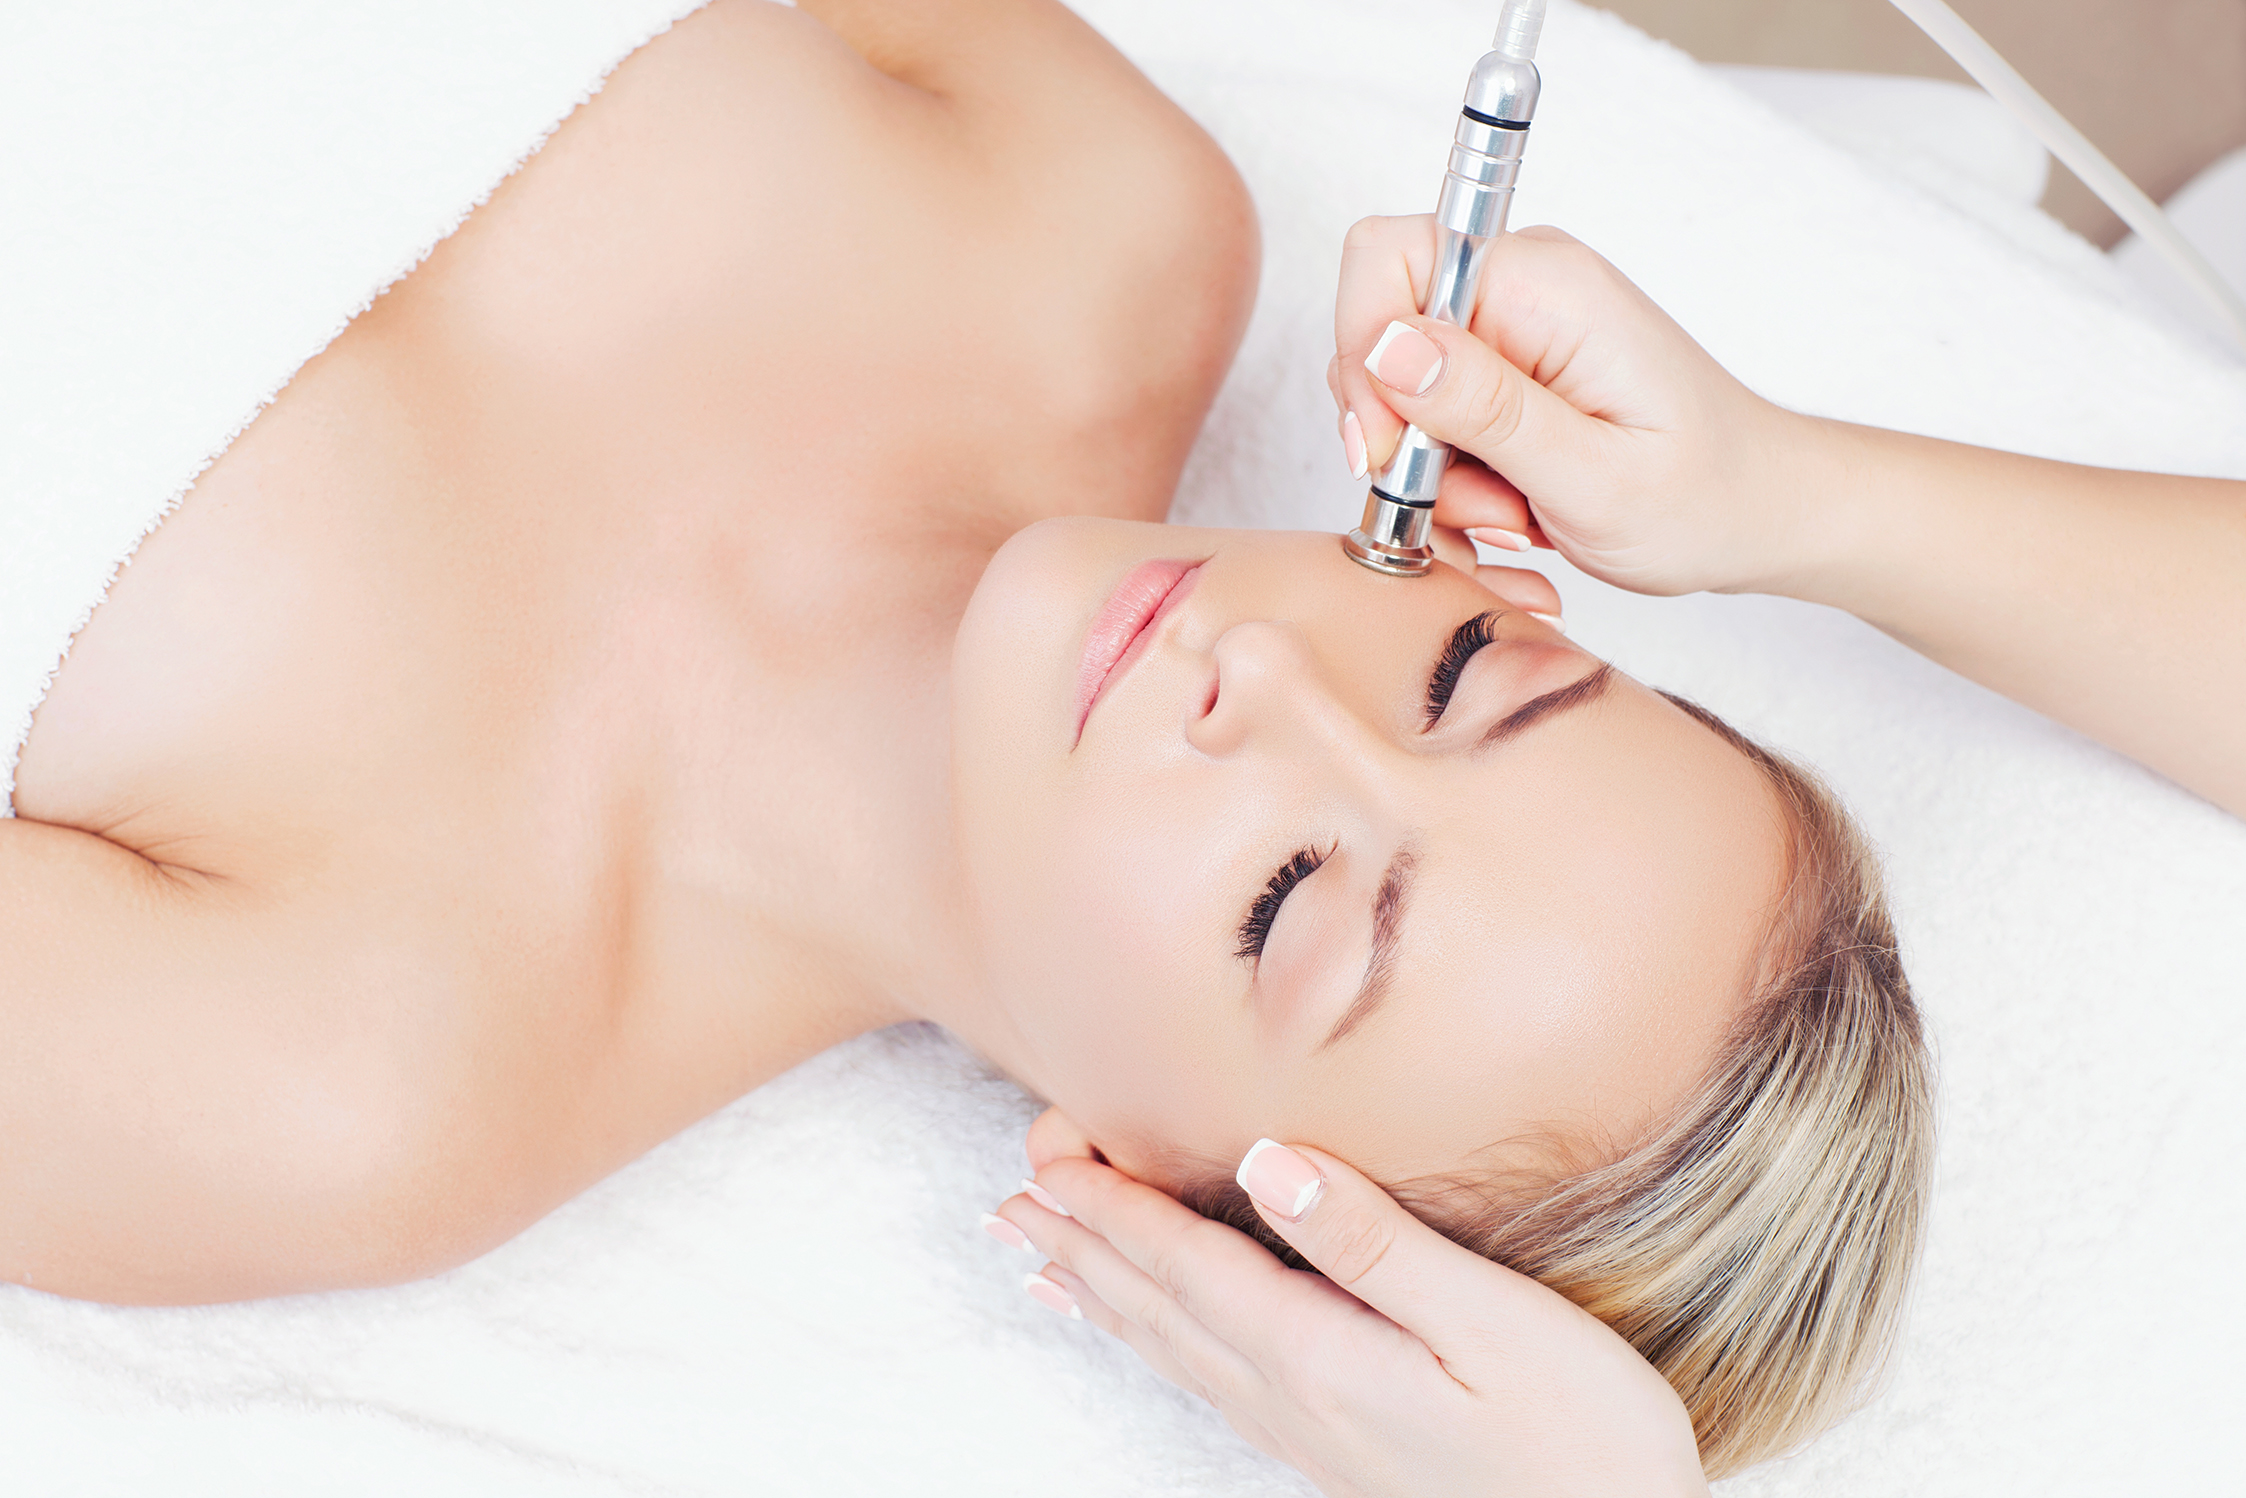 Microdermabrasion treatments at The Beauty Rooms